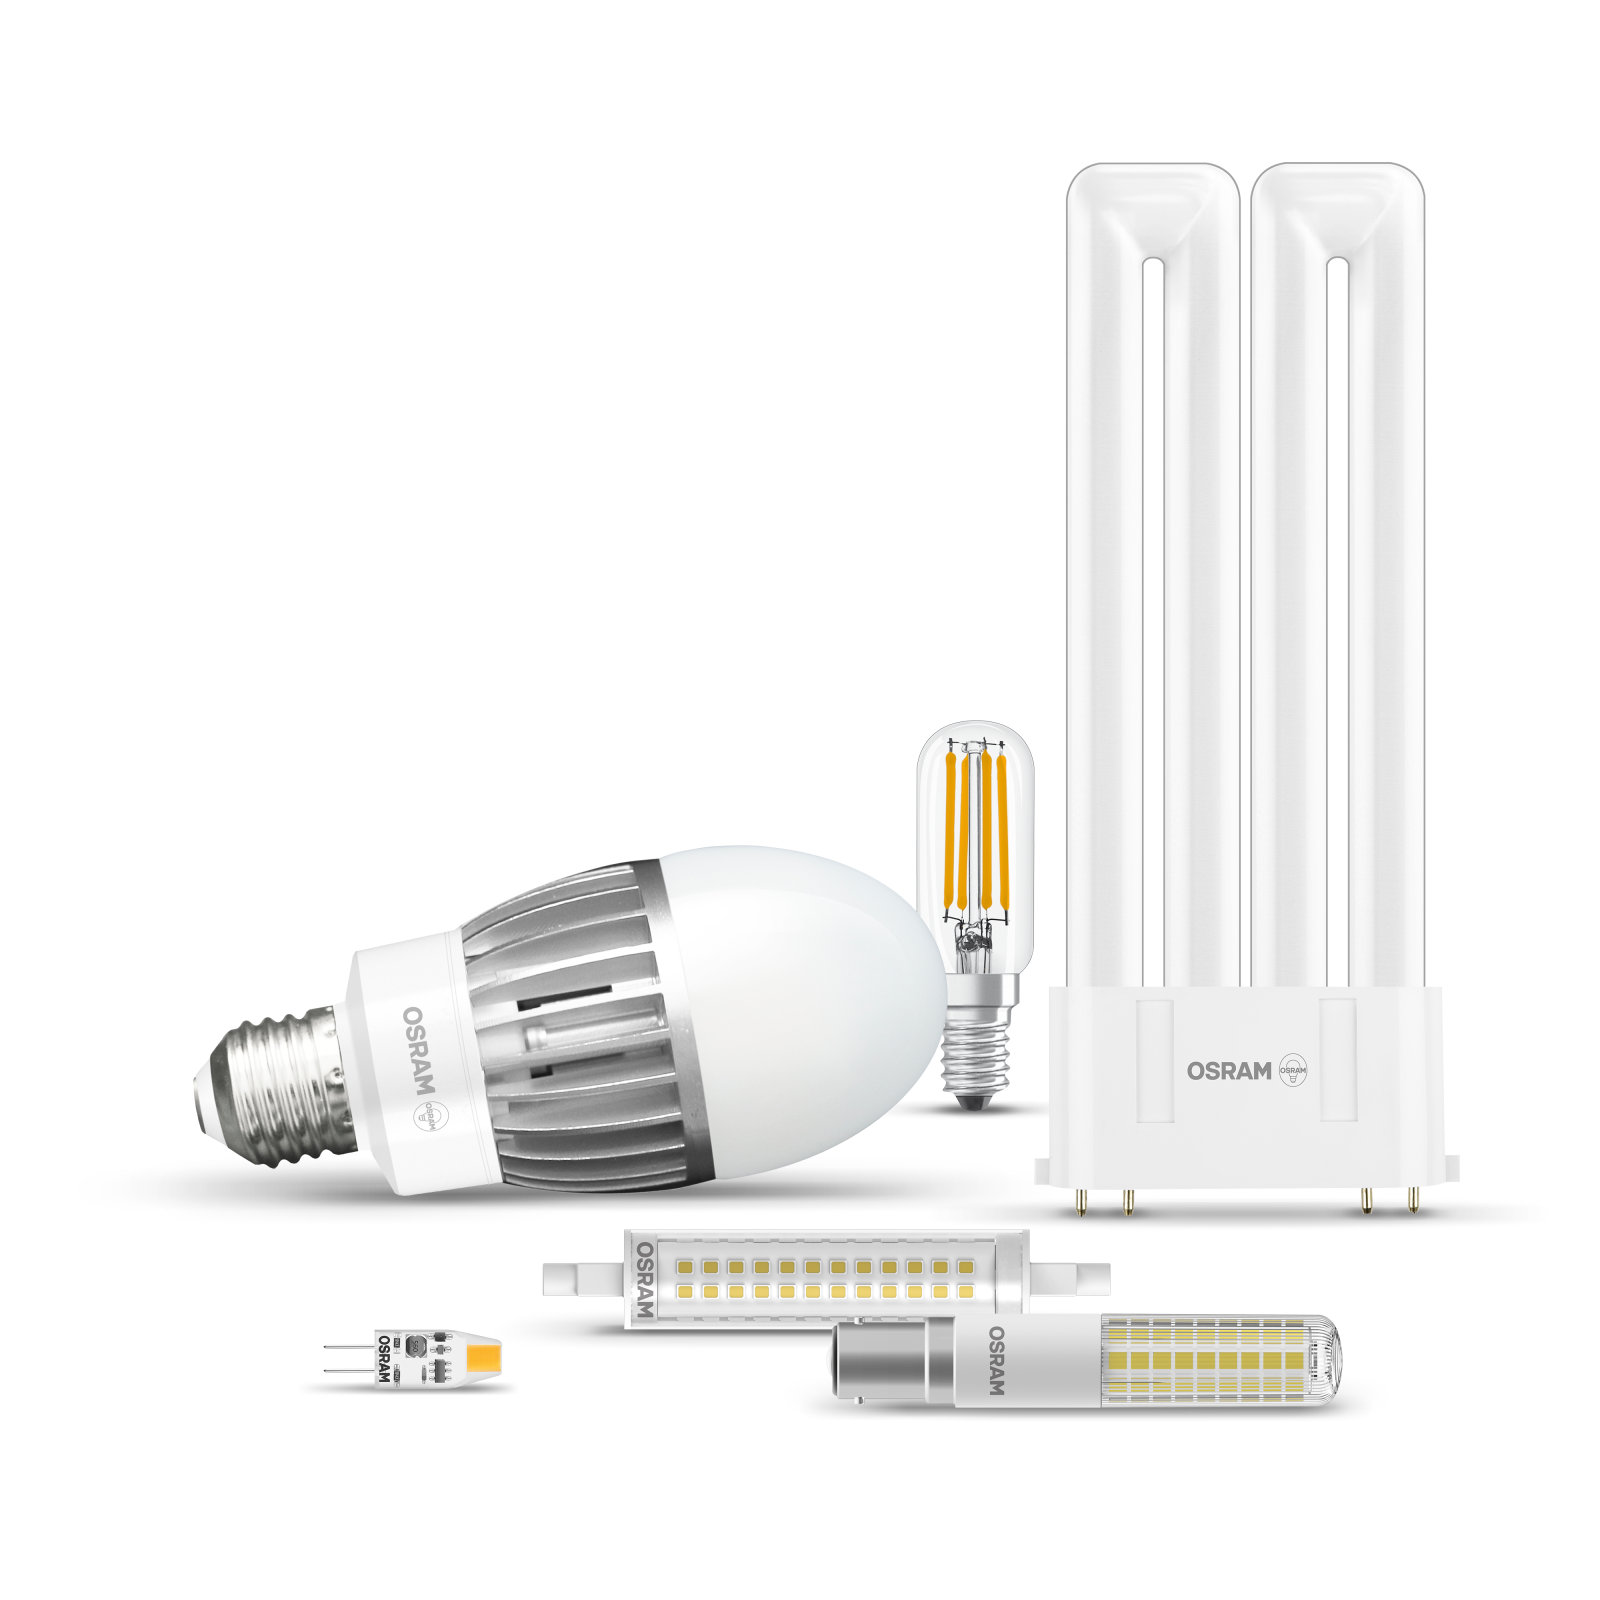 LED special lamps